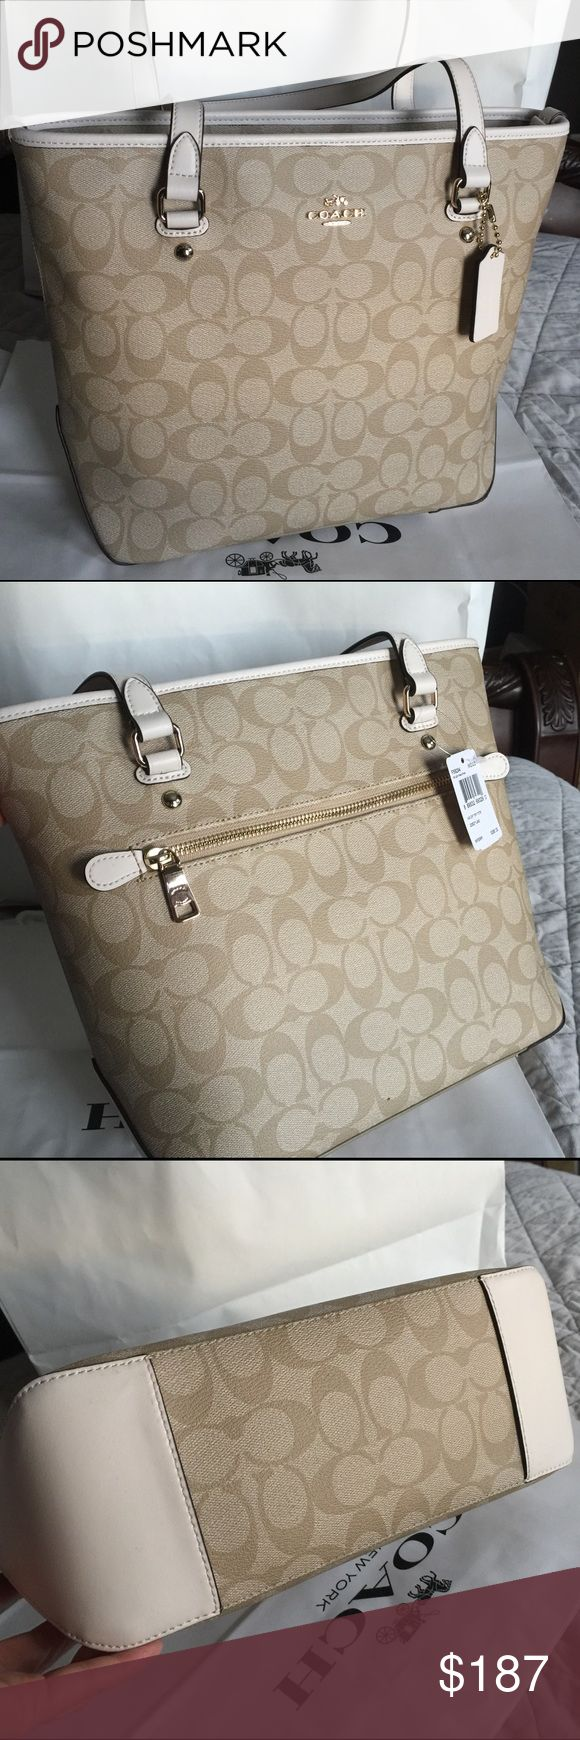 Coach Bag 100% Authentic Coach Tote Bag, brand new with tag!color Khaki/Chalk Coach Bags Totes